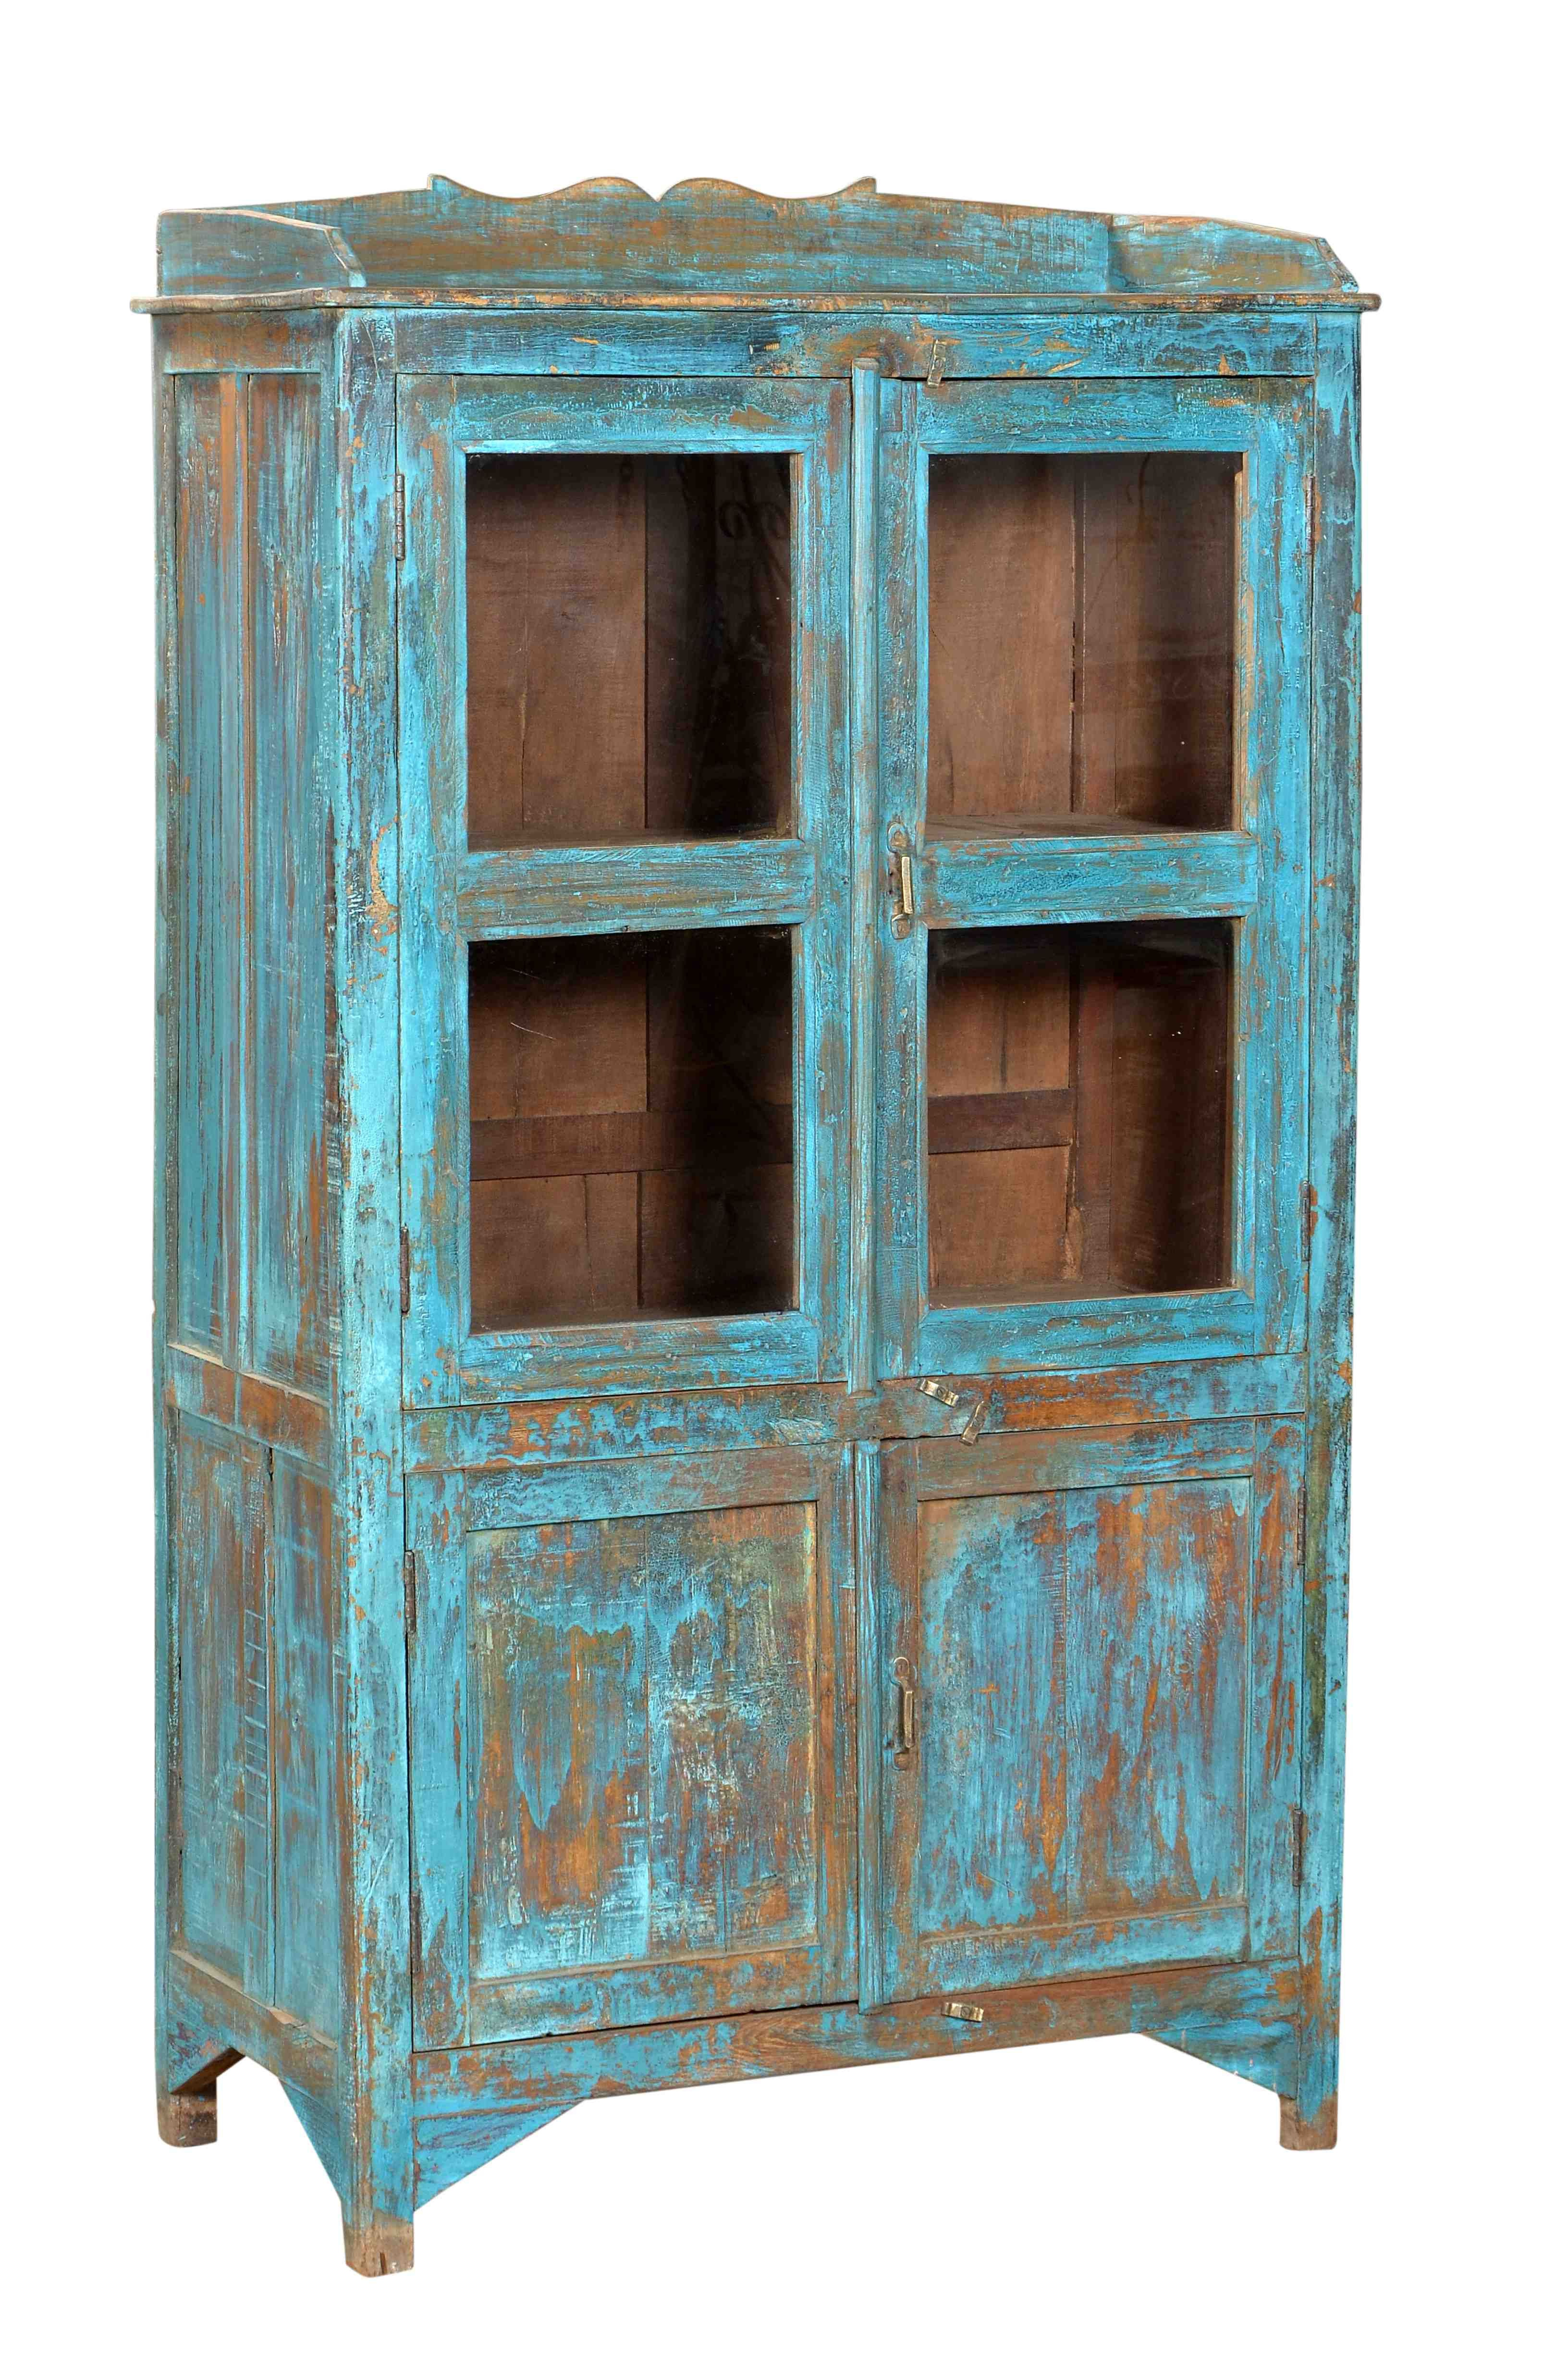 Antique Furniture Online India Luxury Beautiful In Blue is This Indian Antique Cabinet Find